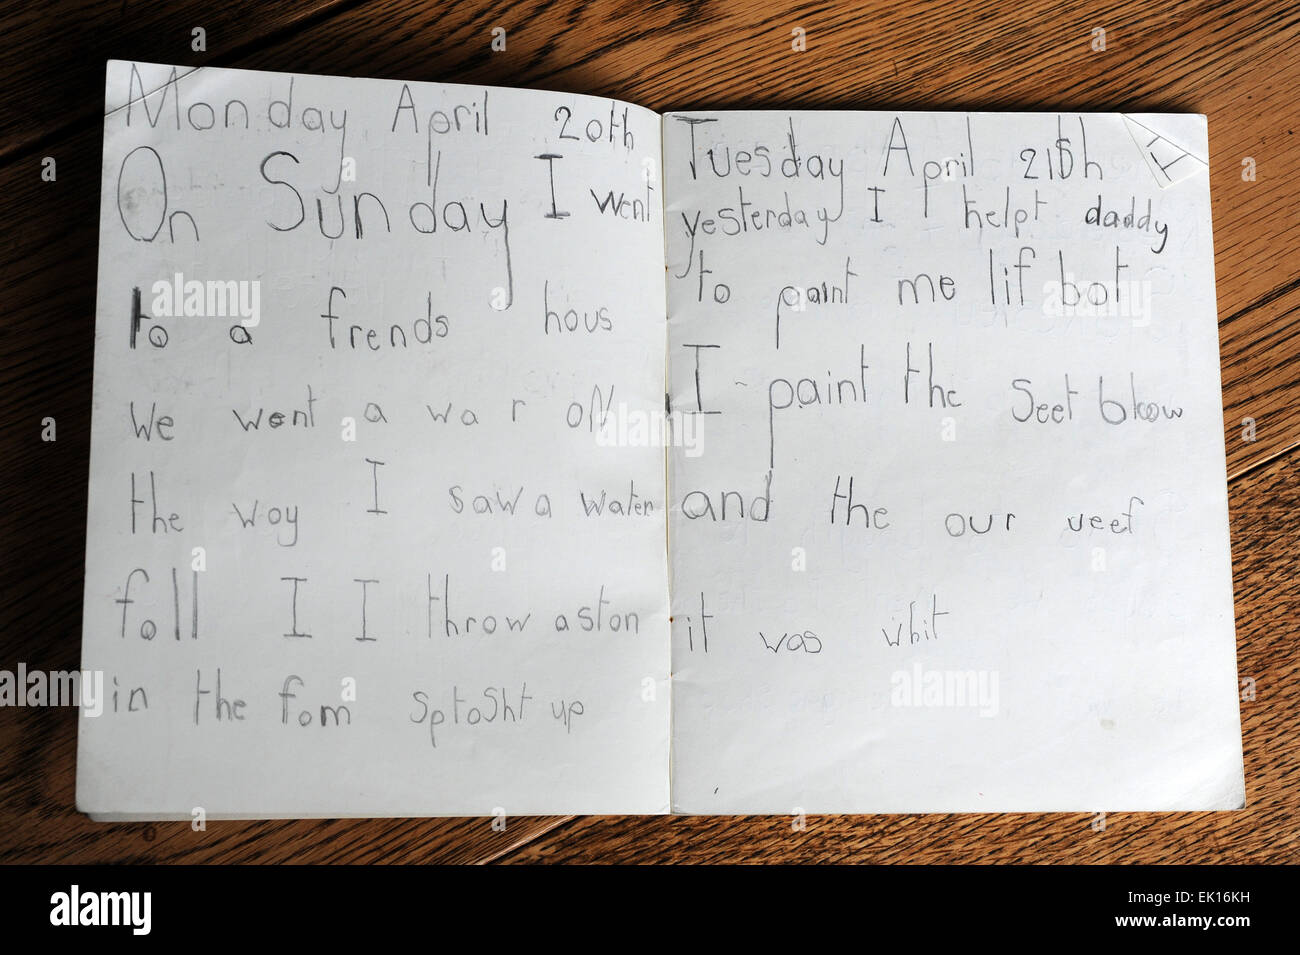 Diaries of primary school children in the United Kingdom - Stock Image